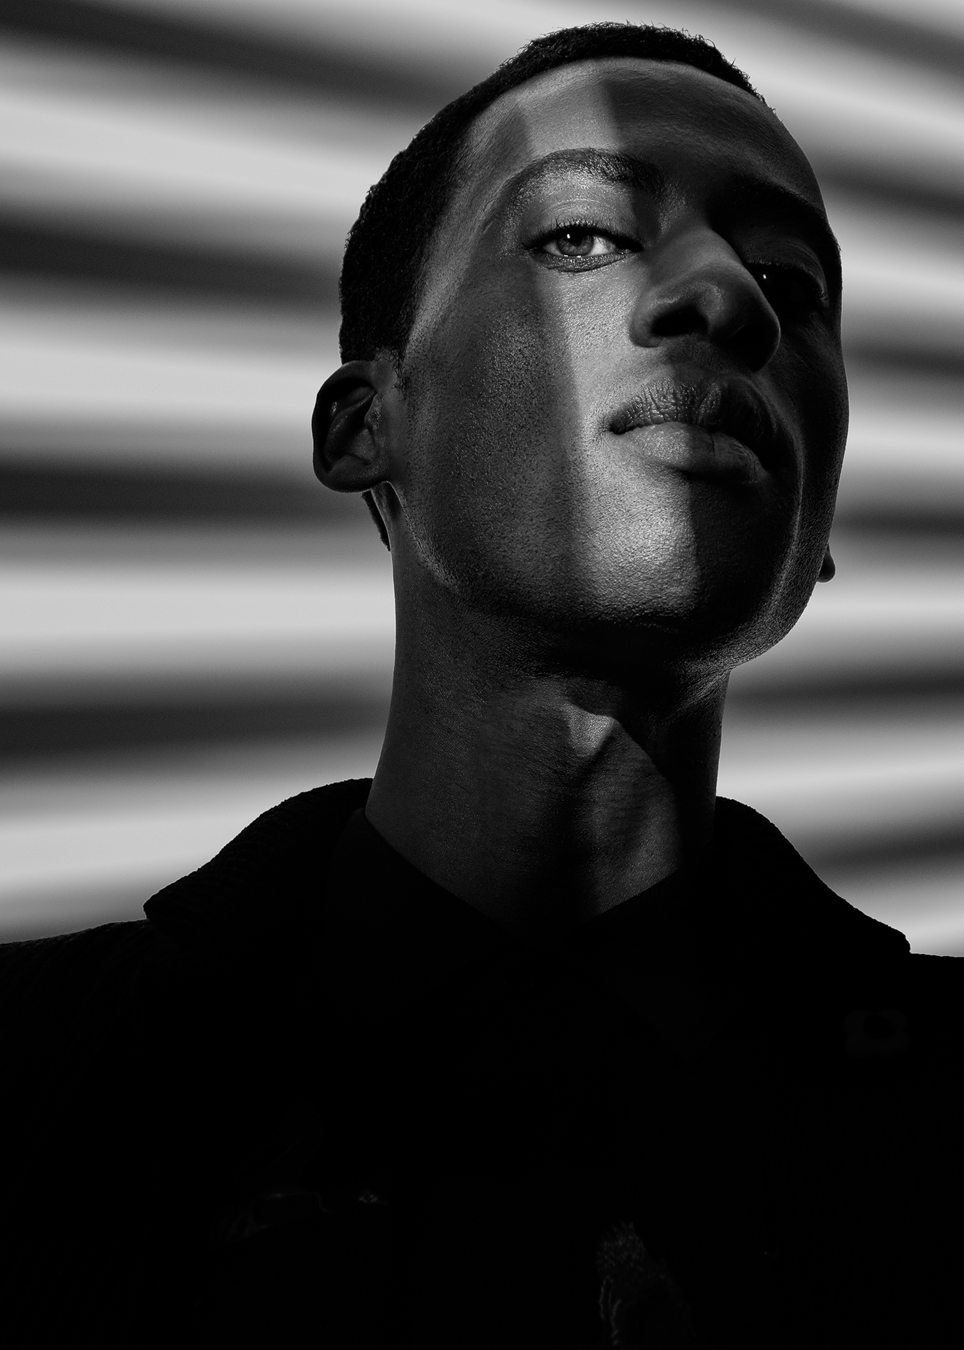 Study of light and shadow with model, stylist and actor Abss Dumont. Personal work by Dragos Ionescu.